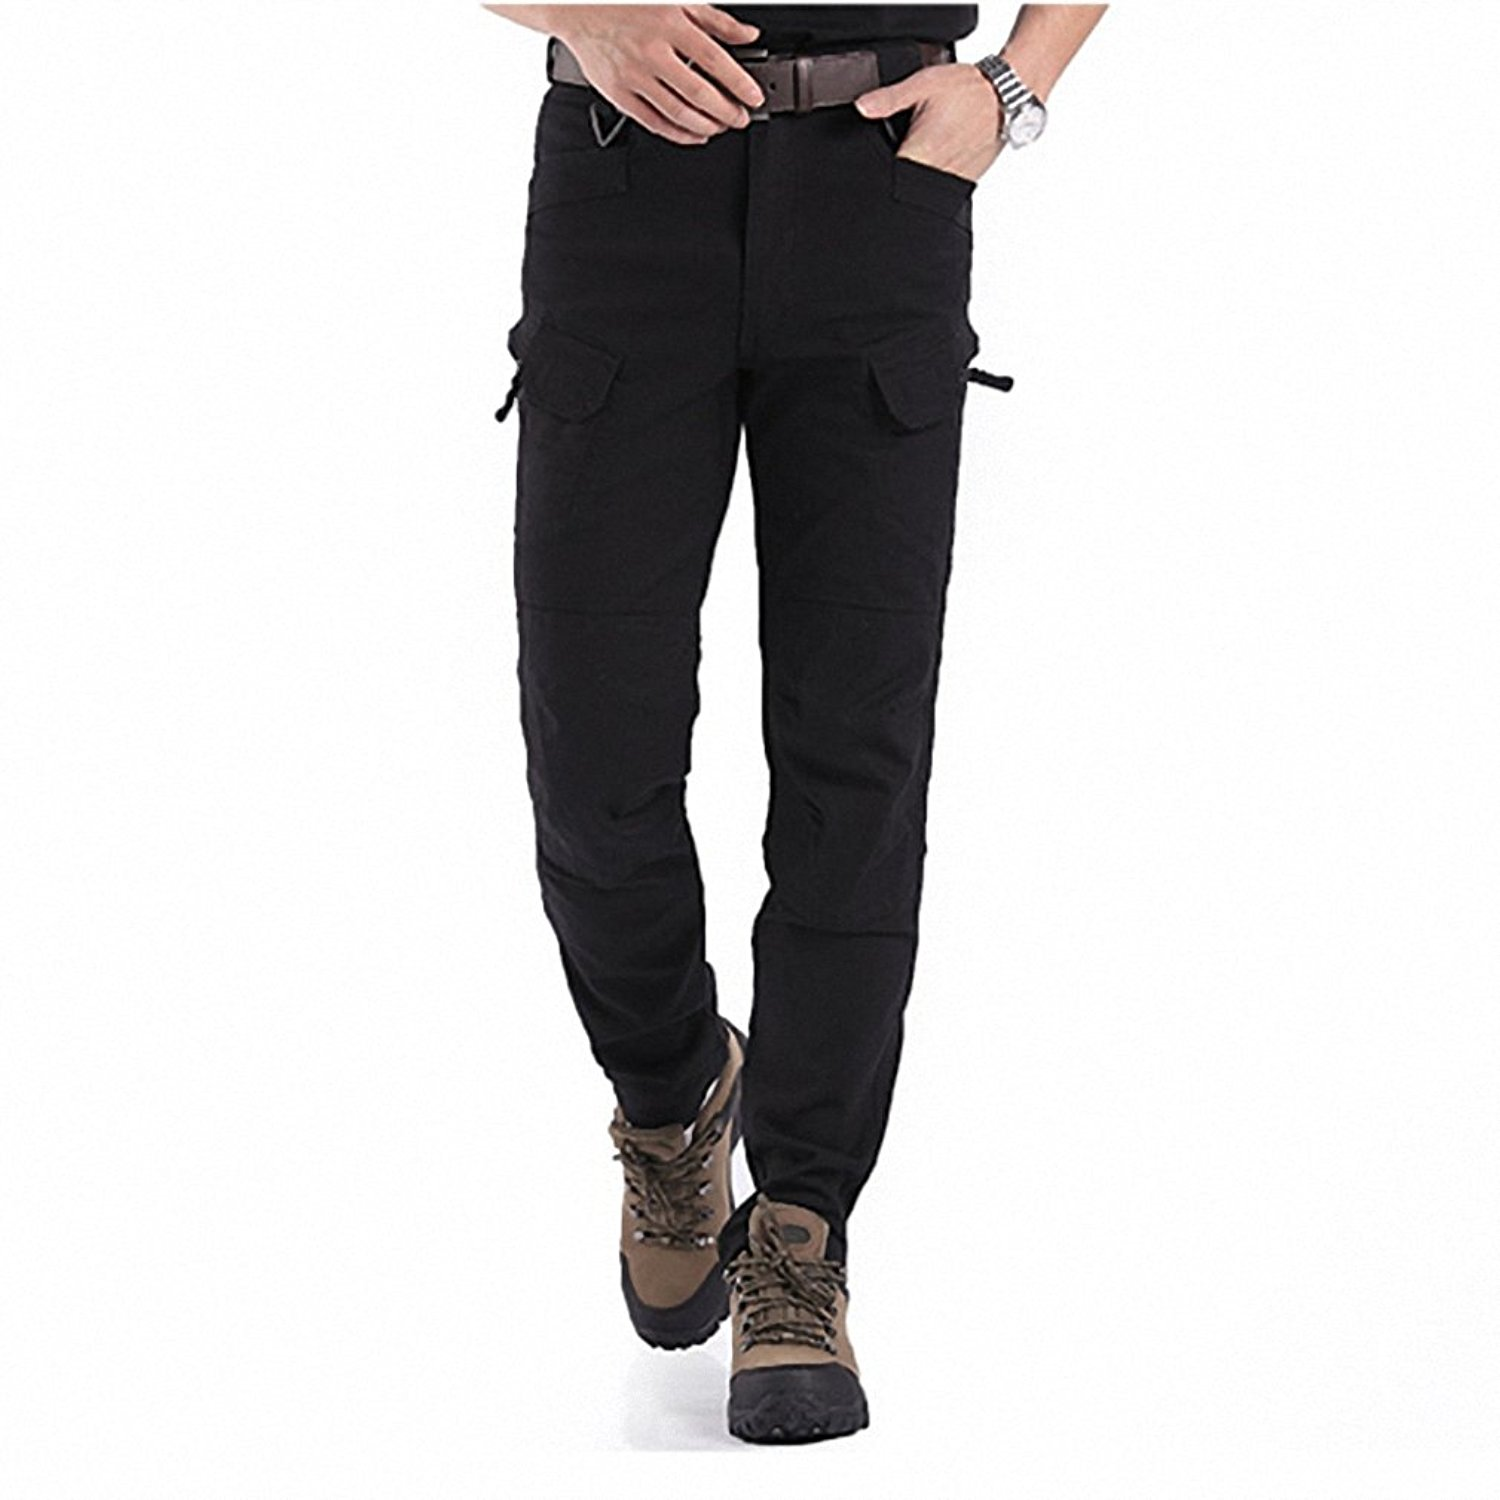 b8664592d54 Get Quotations · Tactical clothing men cargo pants IX7 military trousers